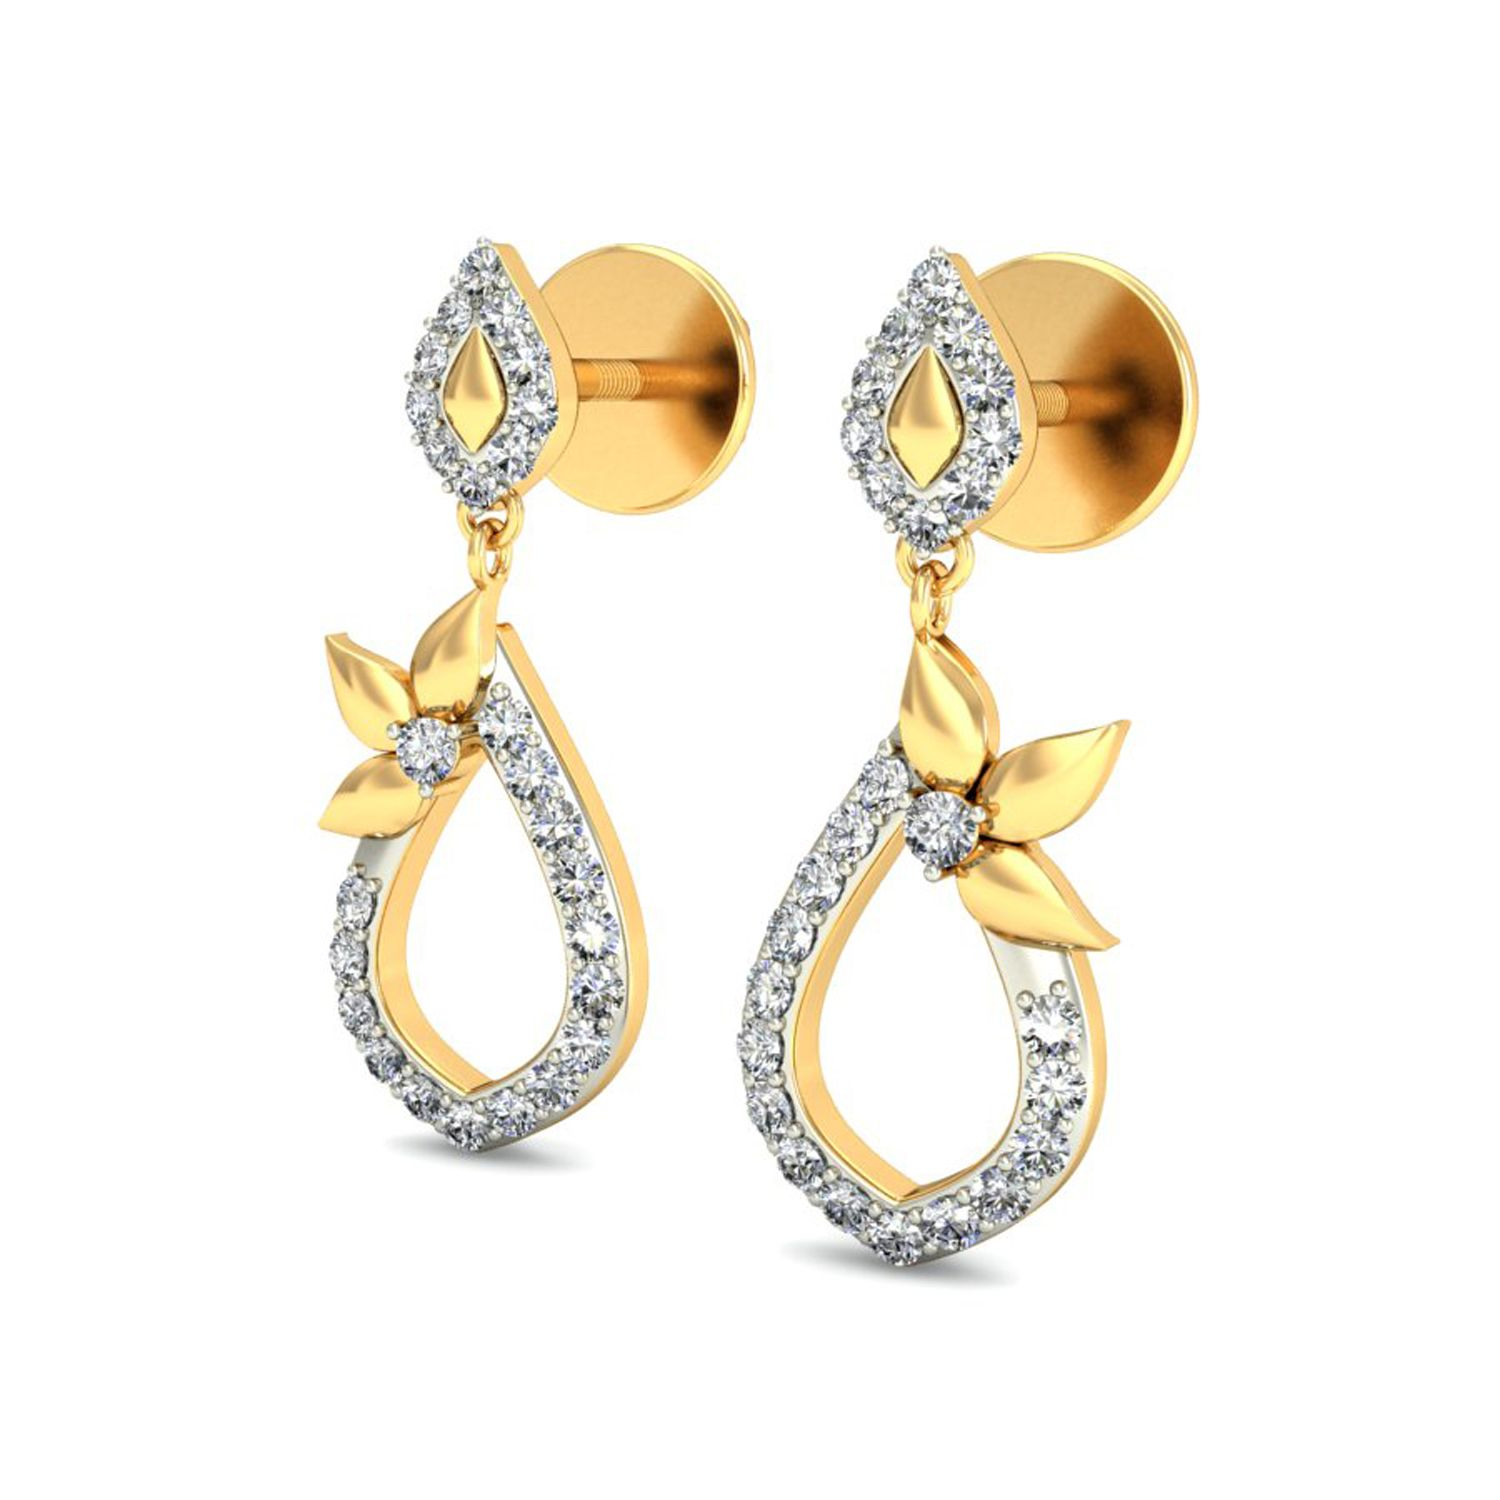 photographic due may certified diamond your monitor slightly workwear colour wear earrings settings designs or to jewelry y p vary lighting ct real bali sources hoops daily gold